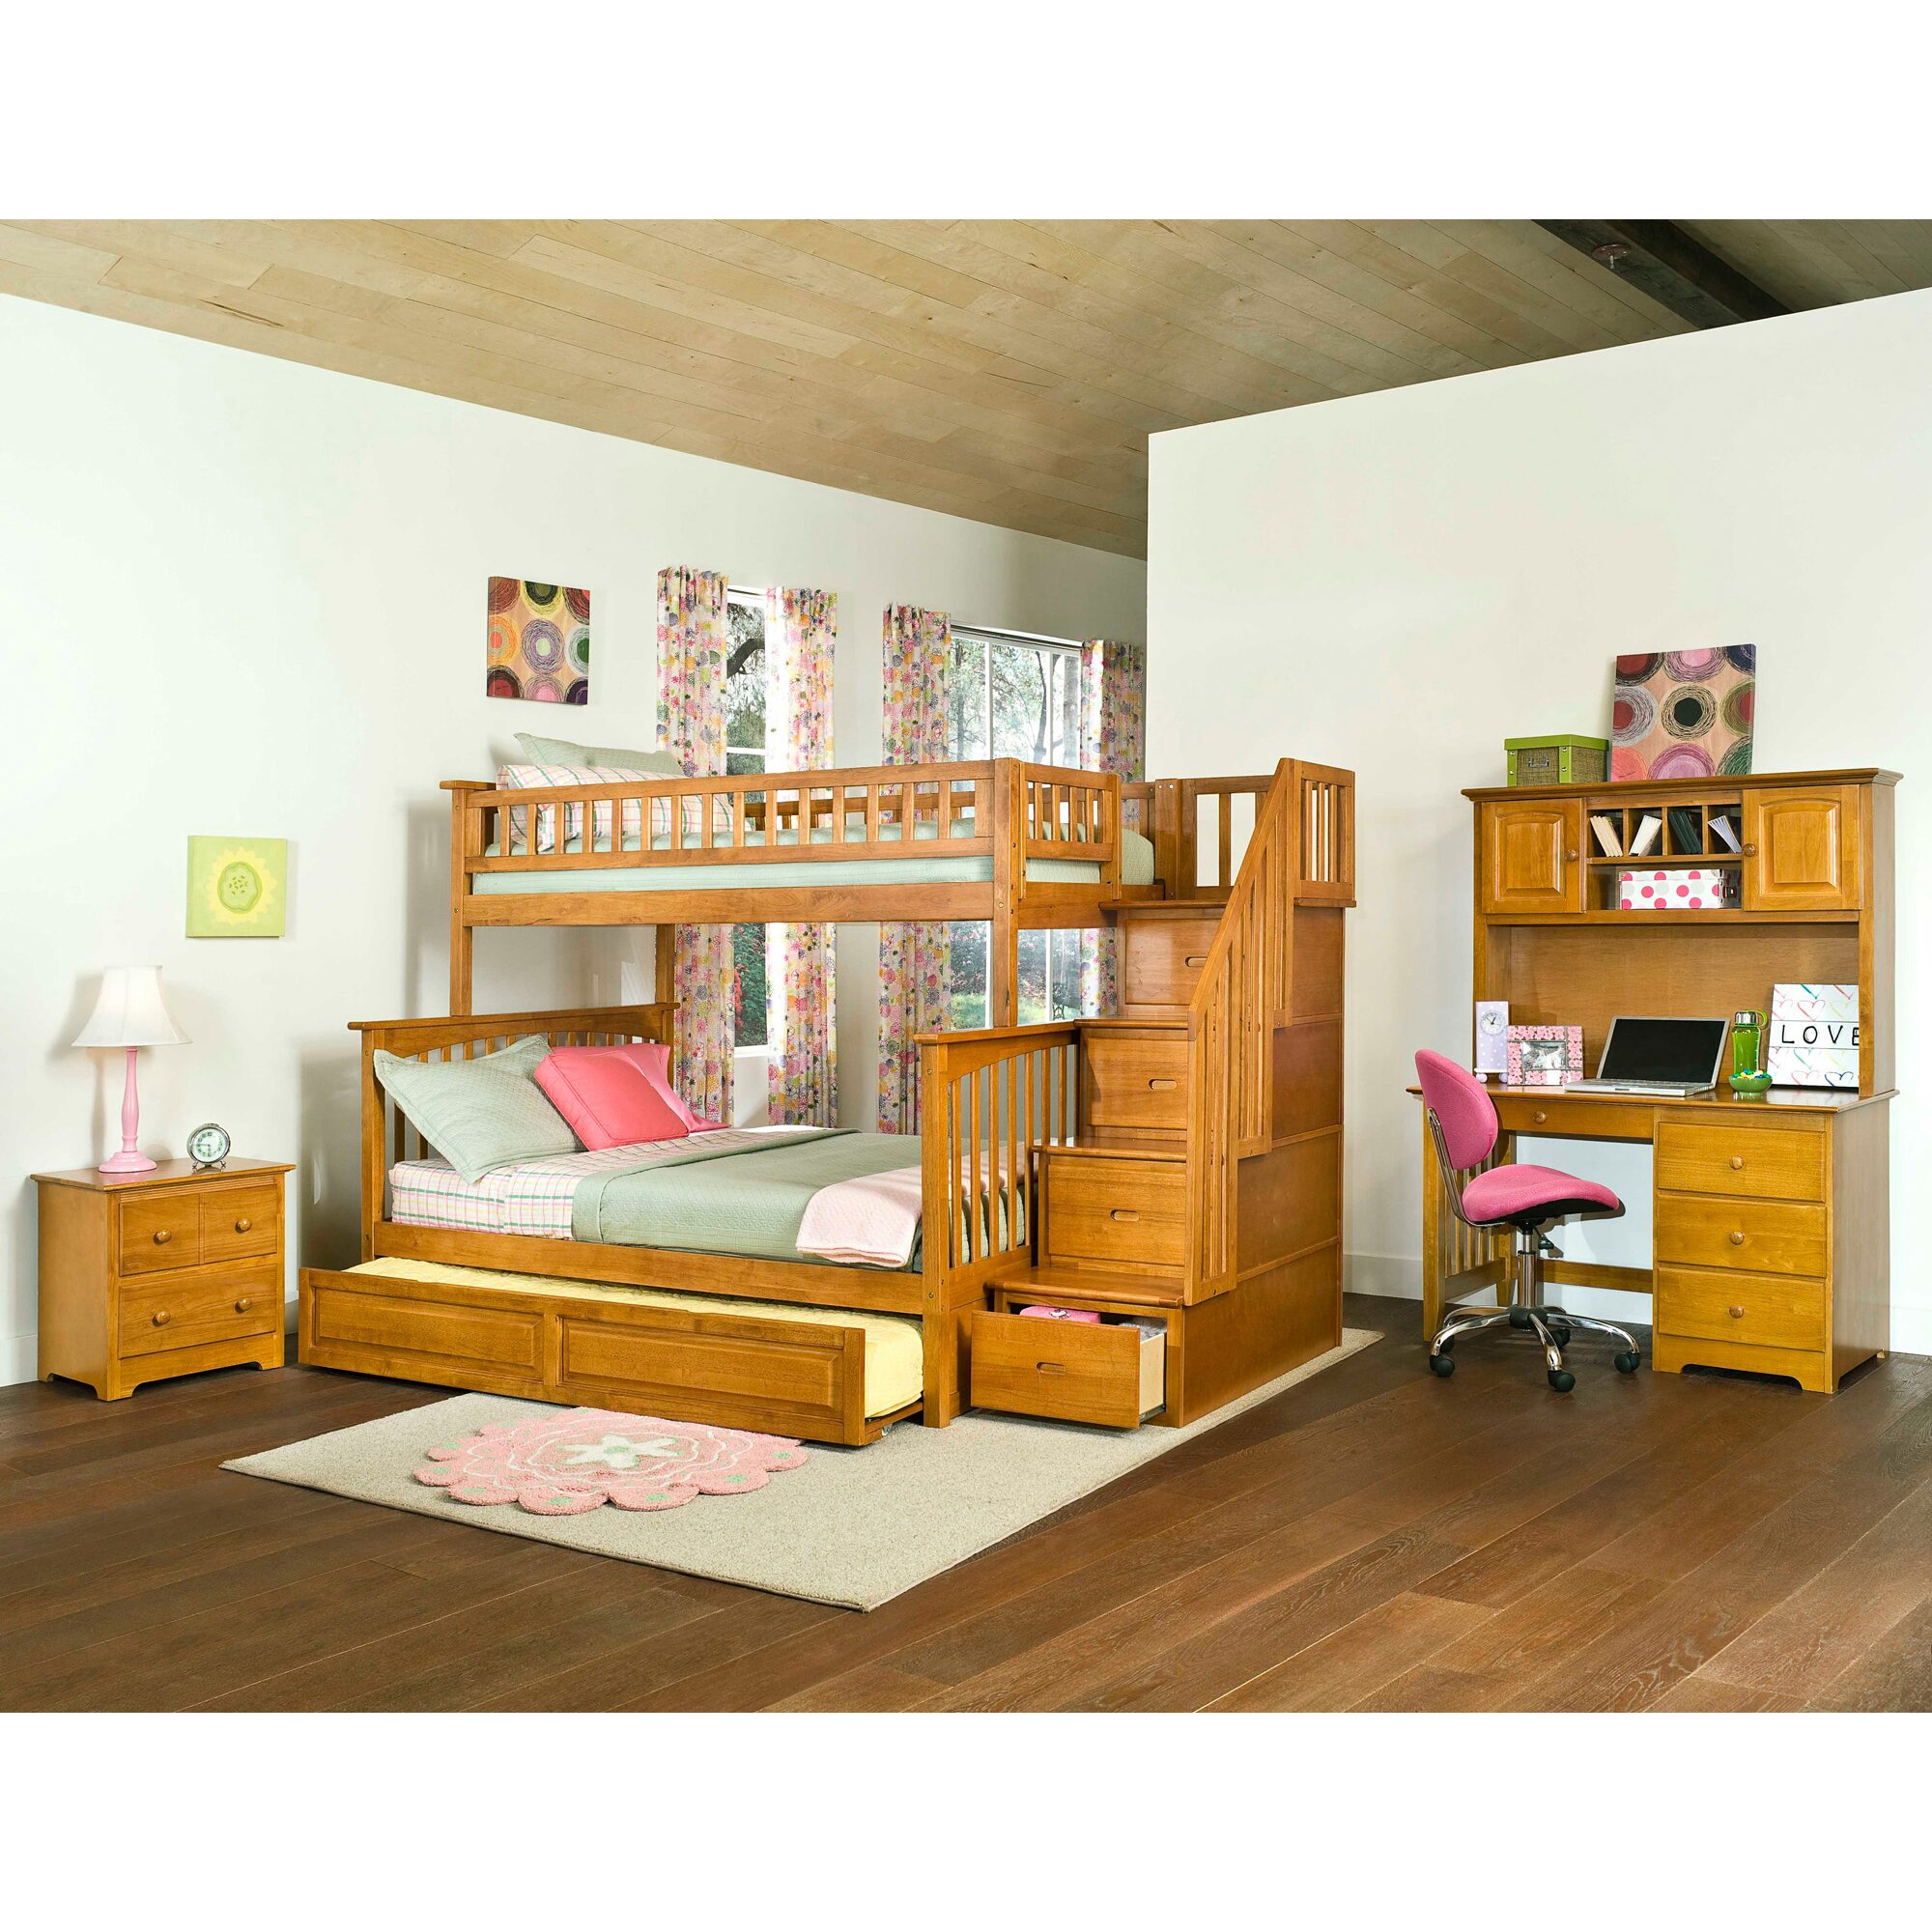 Staircase bunk bed bunk beds with drawer steps 28 bunk for Bunk beds with stairs uk